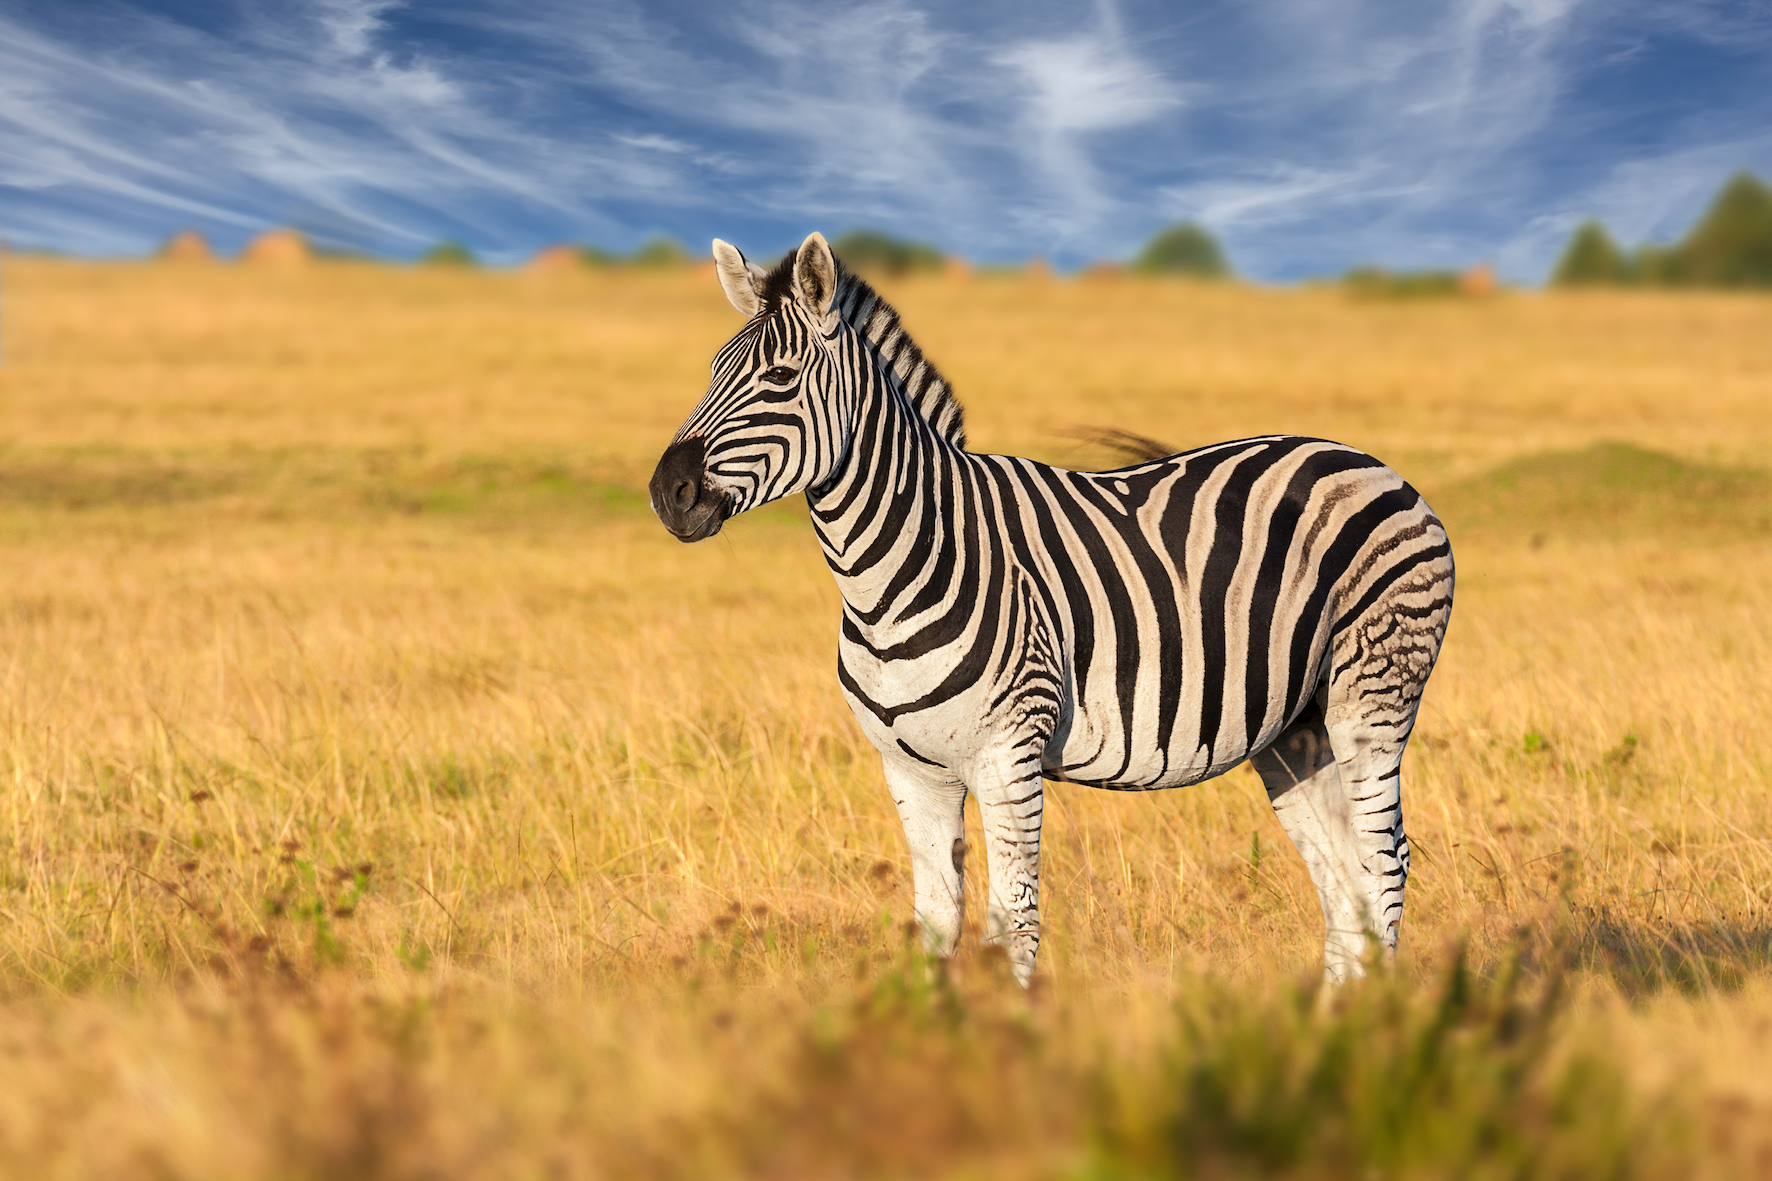 Researchers have found evidence that contradicts the theory that black and white stripes keep zebras cool in the hot sun.